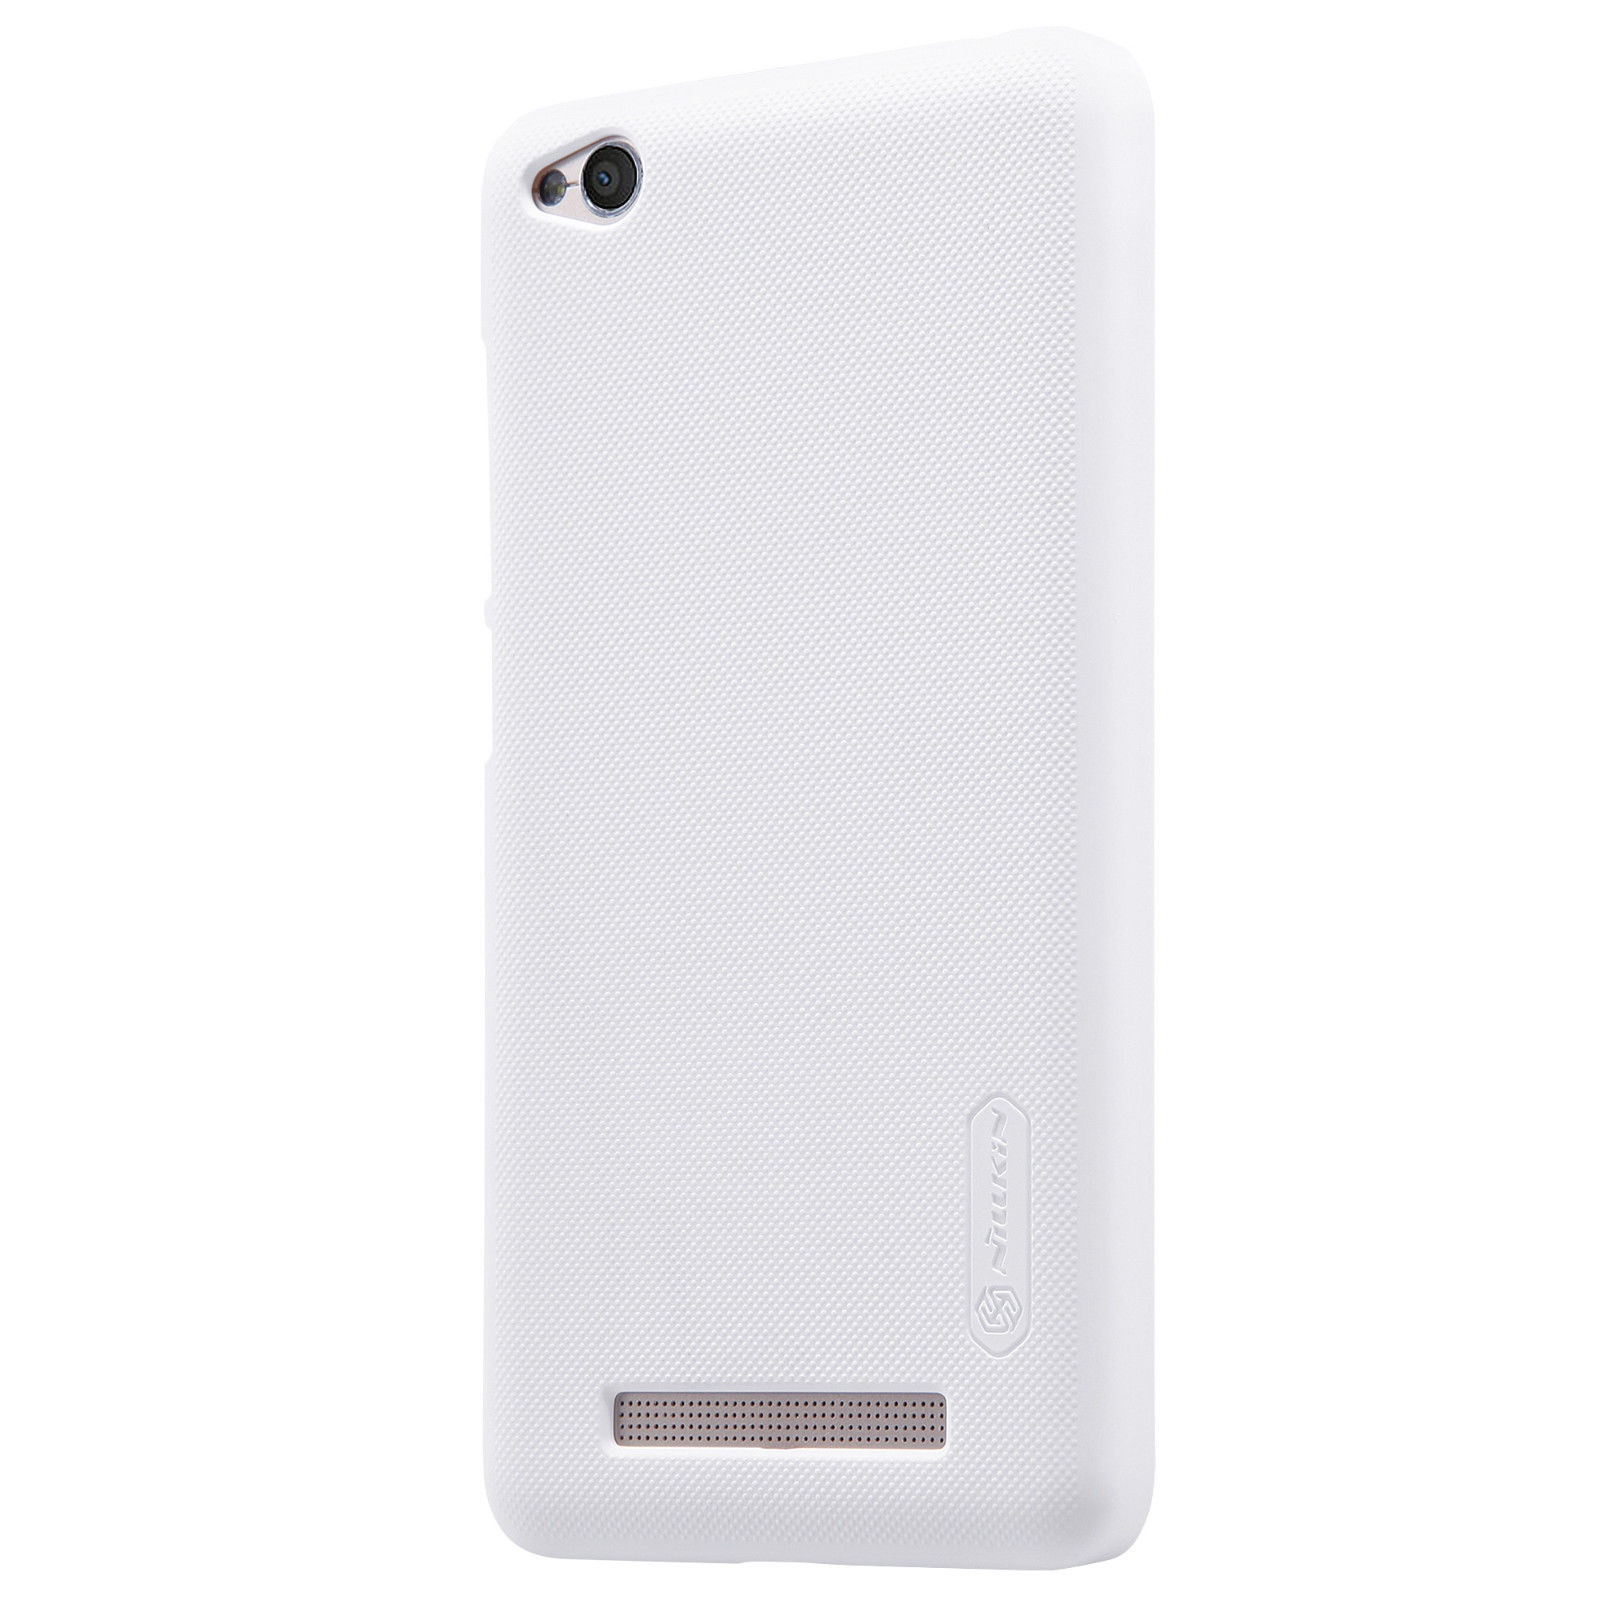 Чехол для Xiaomi Redmi 4A Накладка Frosted Xiaomi Redmi 4A White чехол клип кейс nillkin super frosted для xiaomi redmi 4a черный